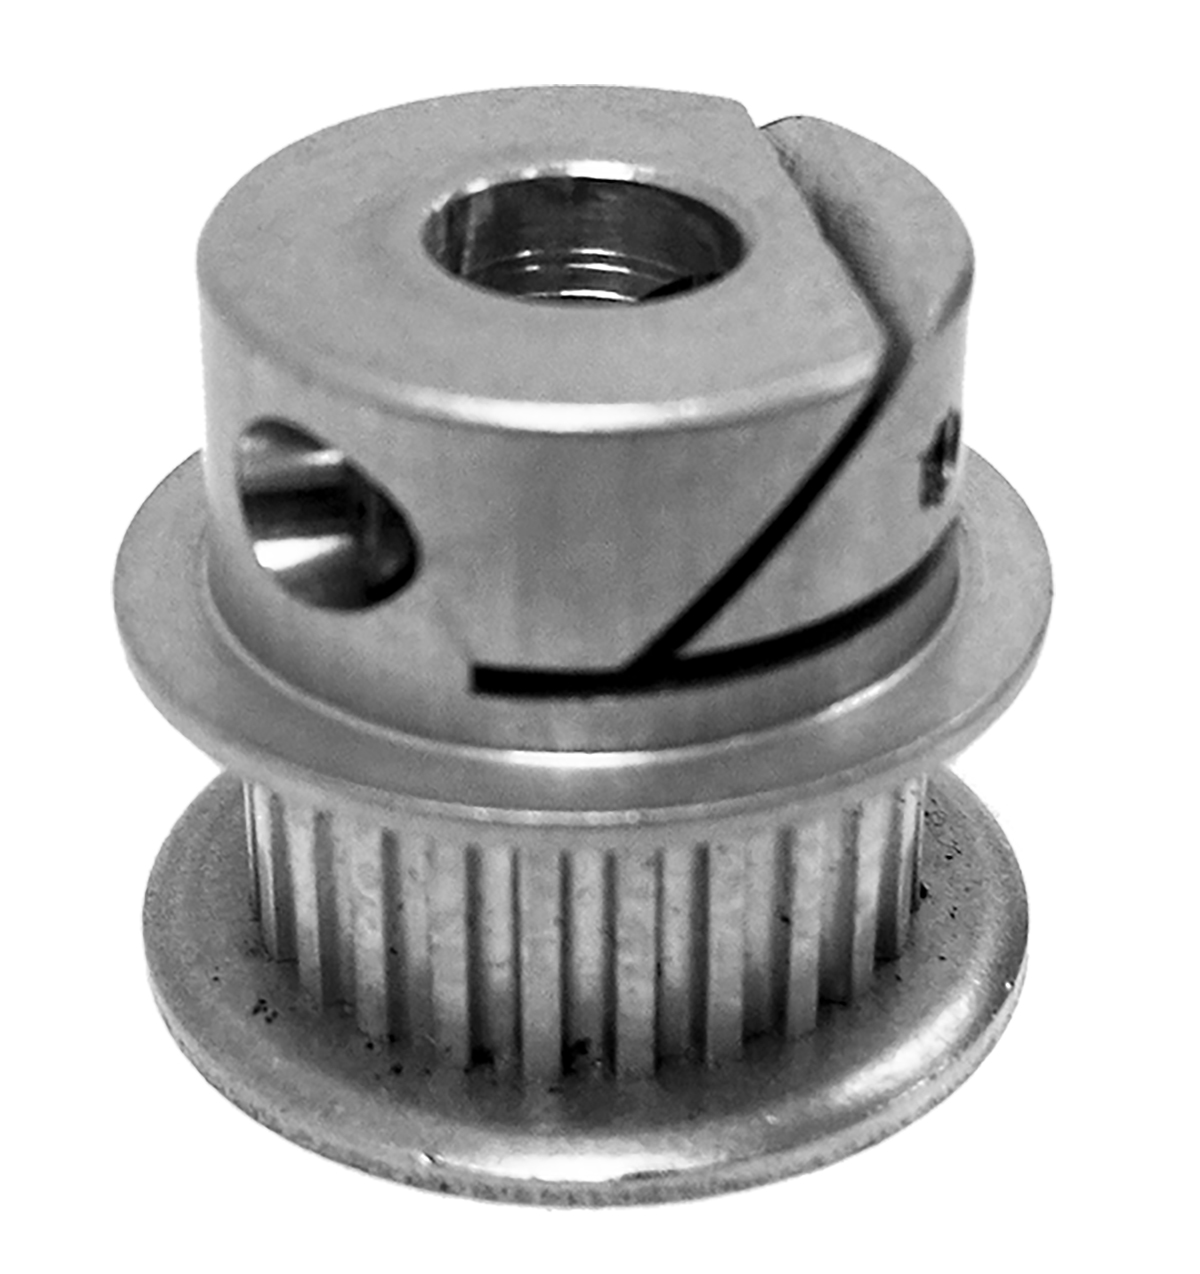 28MP025-IA3 - E-Z Lock Hub Aluminum Imperial Pitch Pulleys